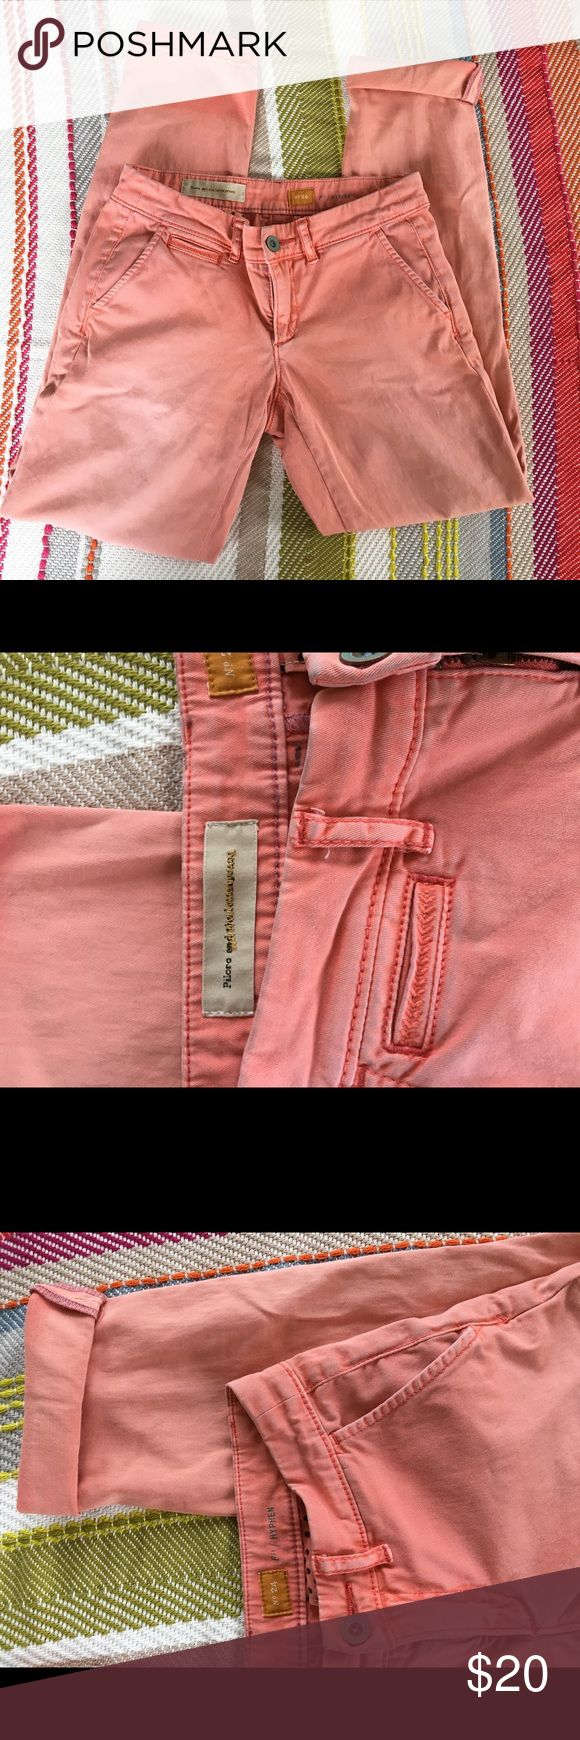 """Anthropologie salmon pants Anthropologie pilcro and the letterpress No. 24 fit hyphen  Salmon colored pants super soft and chic style. Has two flaws: miss color on bottom two inches, it's from them always being rolled up. If rolled up not seen. Also a small """"oil"""" looking stain very small on back calf.   Measurements: Waist- 28 Rise- 7 Inseam- 31 Anthropologie Pants Straight Leg"""